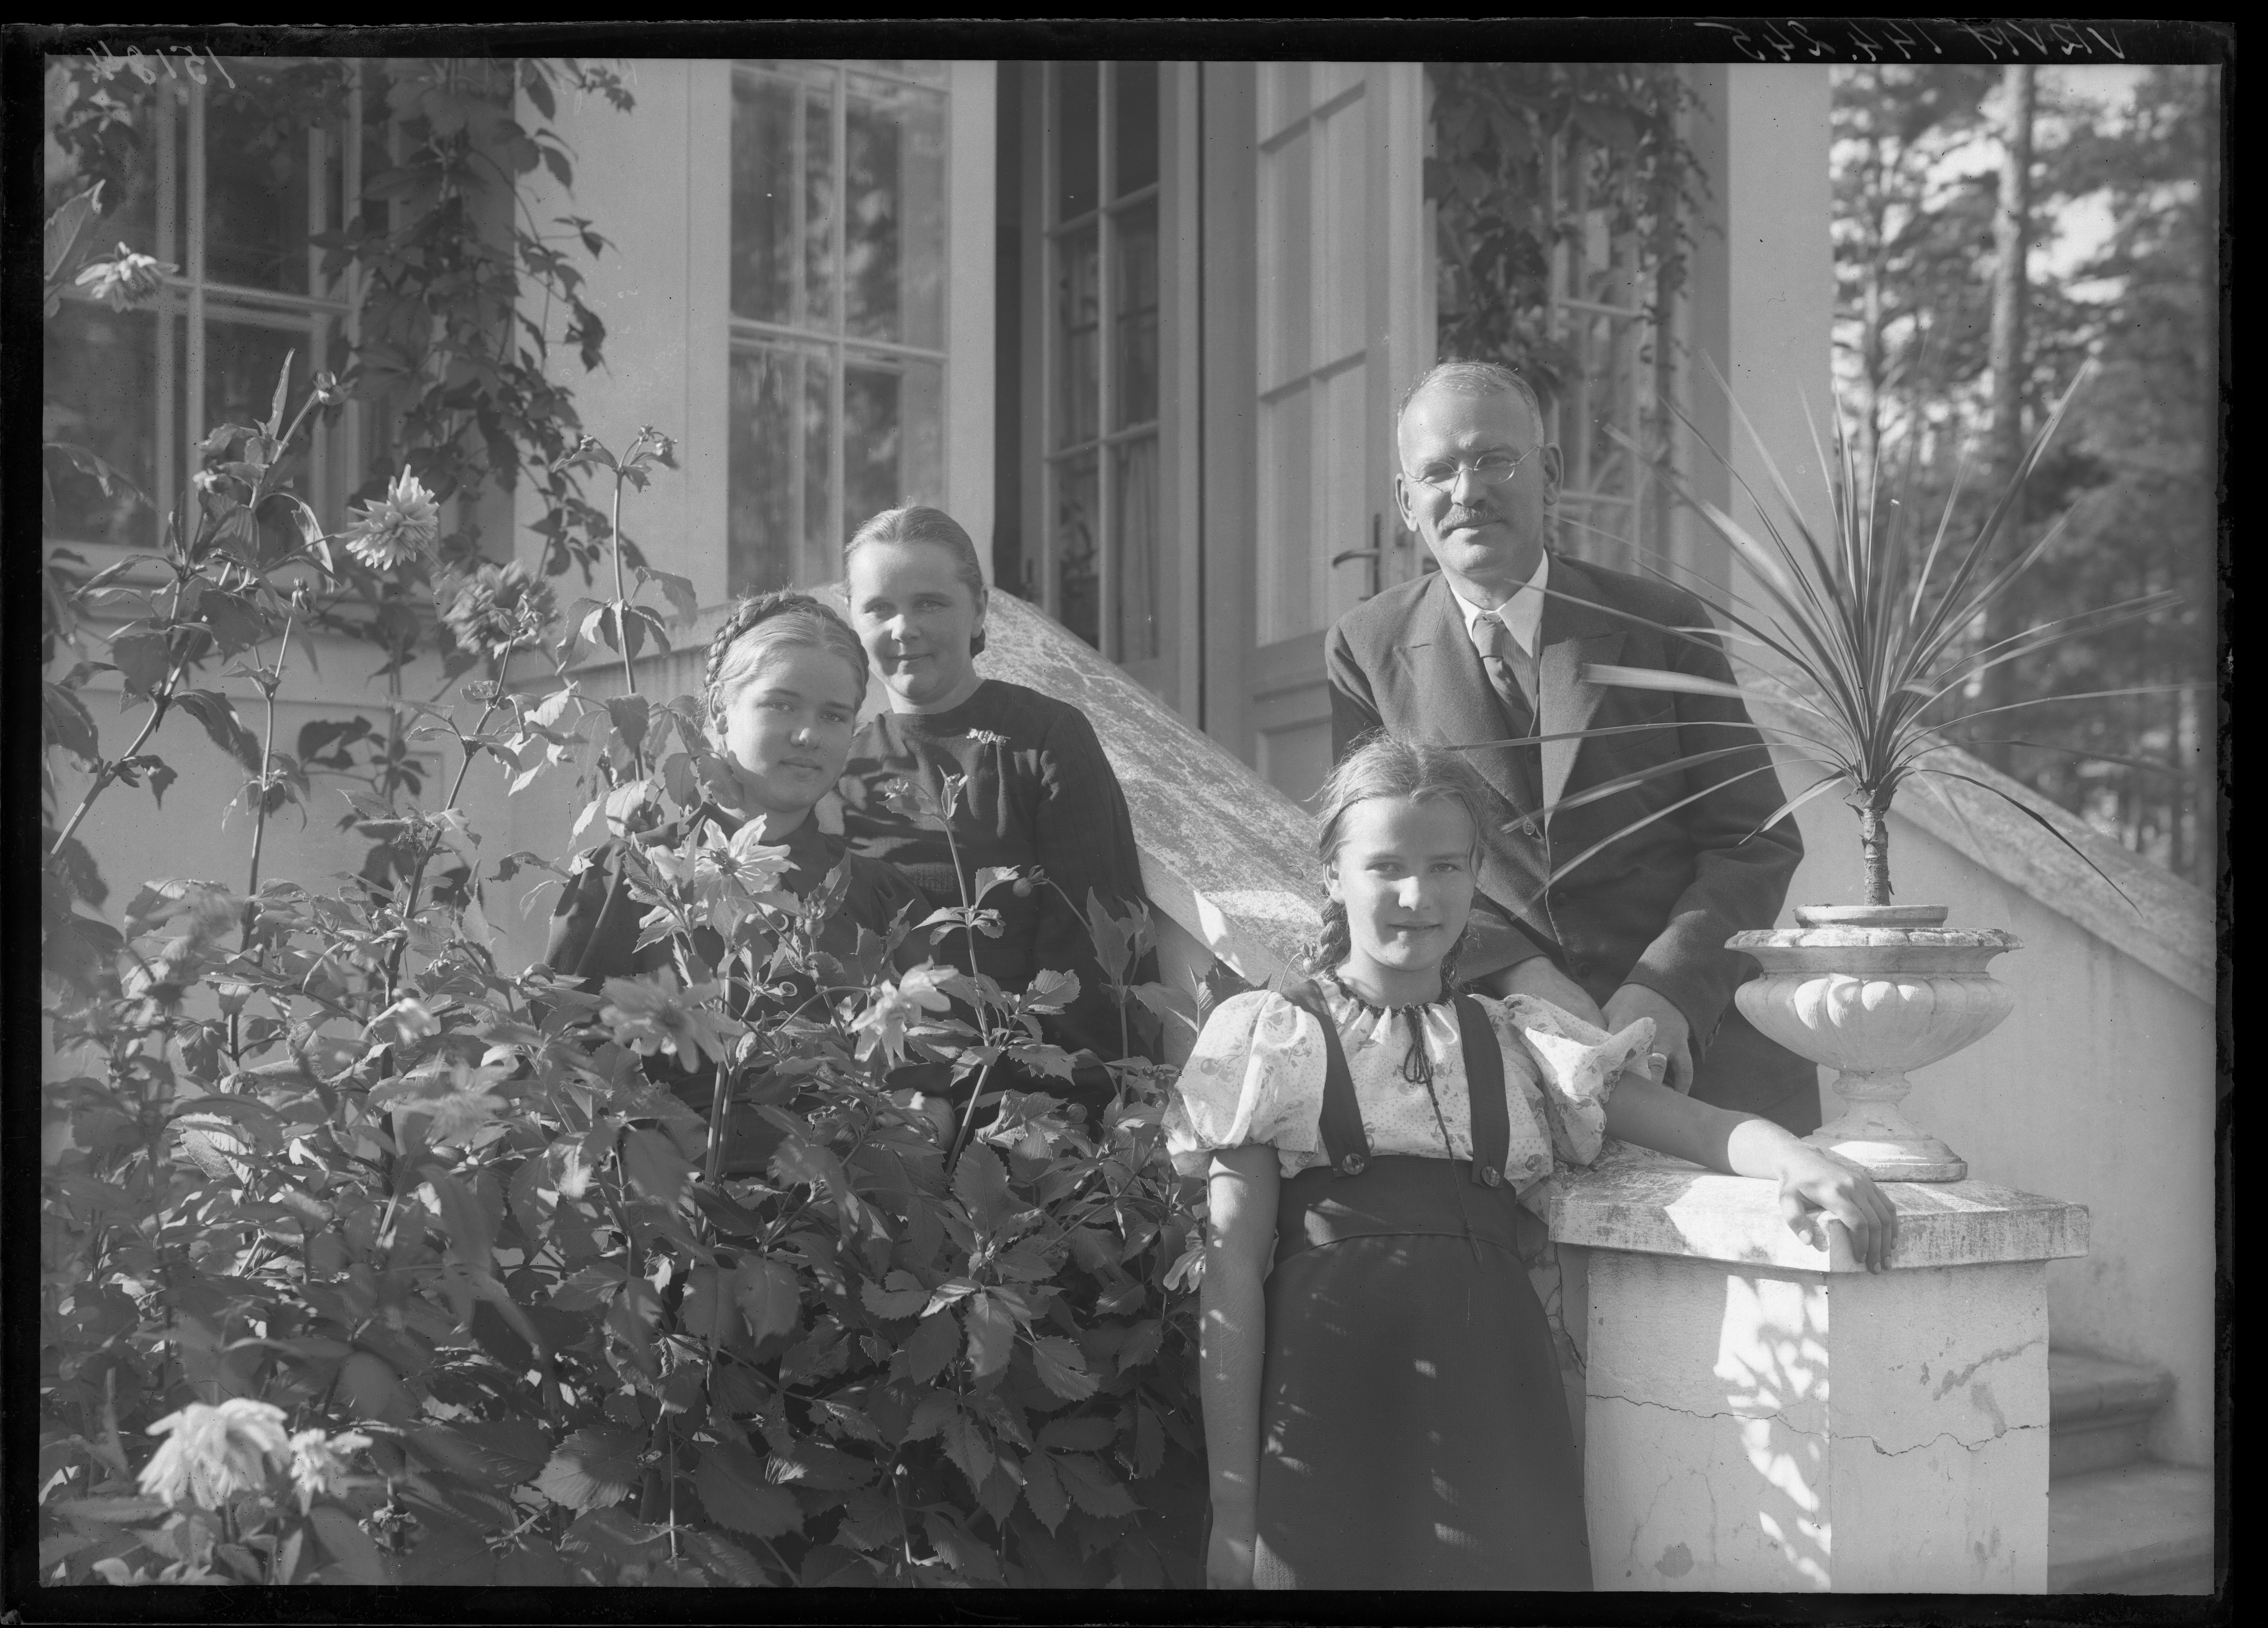 Portrait of philisopher, professor of Latvian University Pauls Dāle (1889-1968) with his family in front of their house in Mežaparks, Riga, taken by Krišs Rake in 1936. P. Dāle was a disciple of E. Husserl, the most prominent philosopher in the interwar Latvia, founder of the Institute of Psychology of the Latvian University in 1938. Due to his philosophic and religious thoughts P. Dāle was fired from the Latvian State University in 1948 and deprived from possibility to do academic research. Although 5 years later he was allowed to work at the Institute of Language and Literature of the Latvian SSR Academy of Sciences and later also earned living by translations from Russian. The last years of his life were spent in poverty and isolation. VRVM 144.245